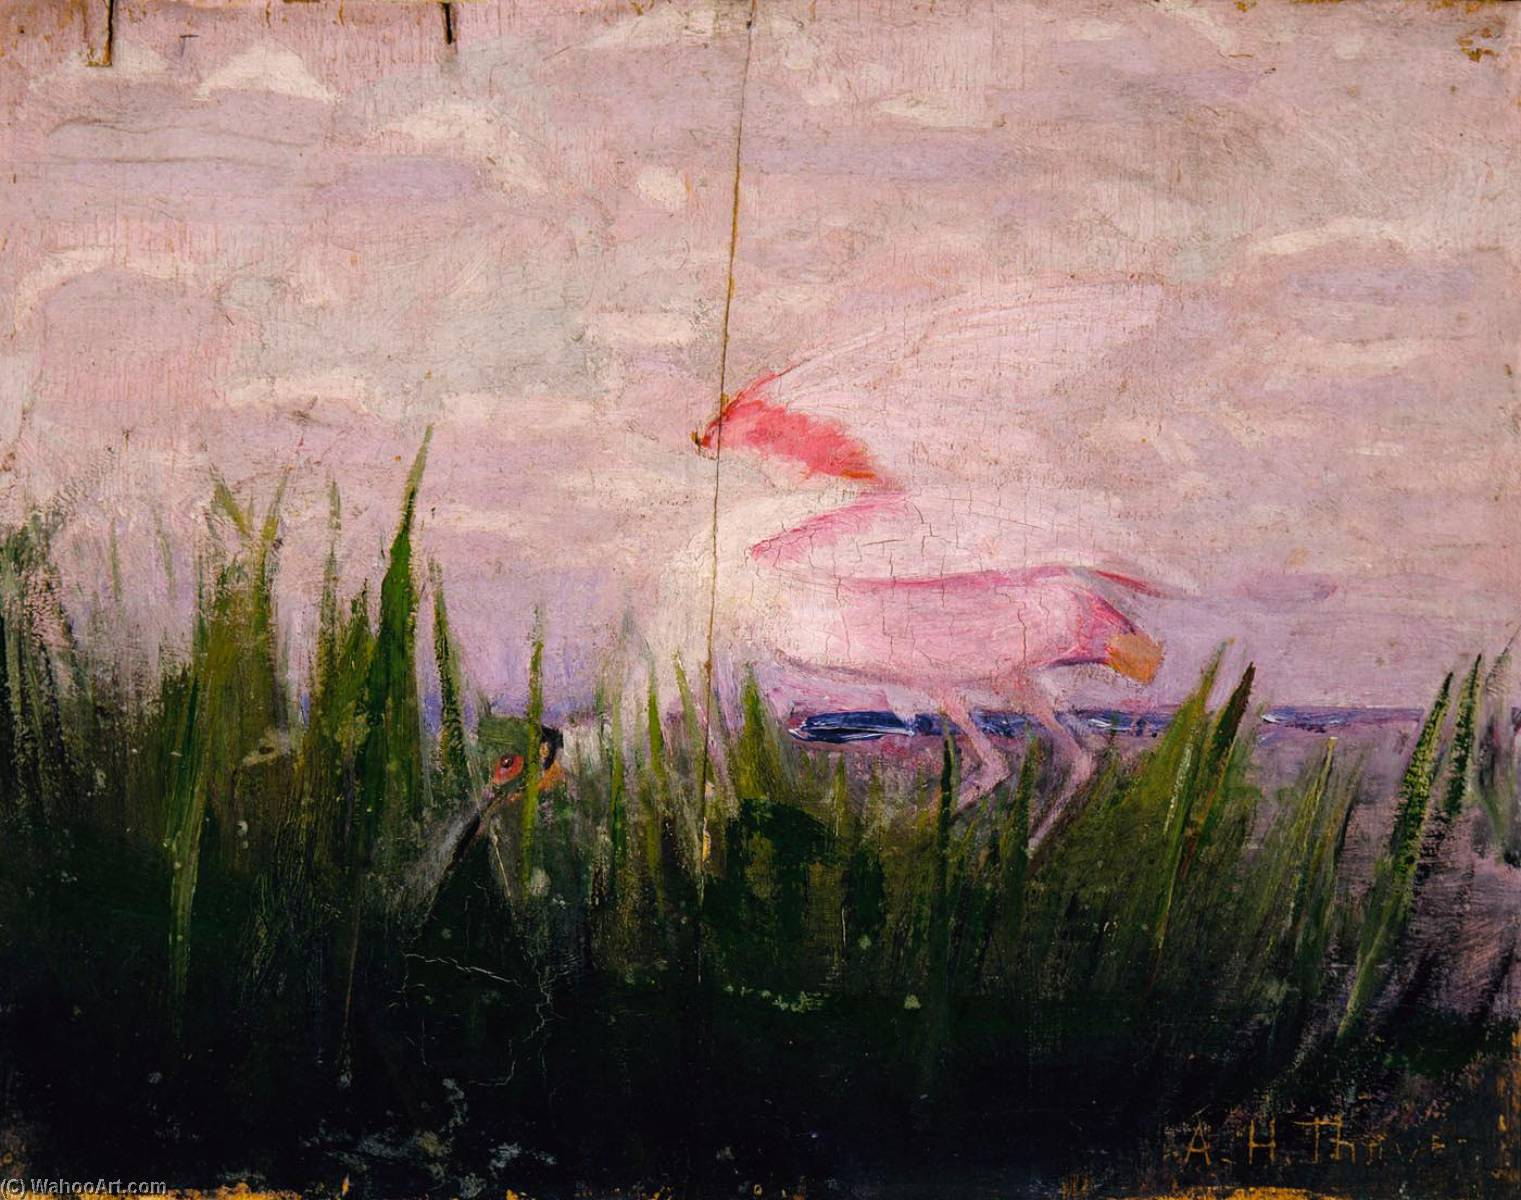 Roseate Spoonbill, study for book Concealing Coloration in the Animal Kingdom, Oil by Abbott Handerson Thayer (1849-1921, United States)